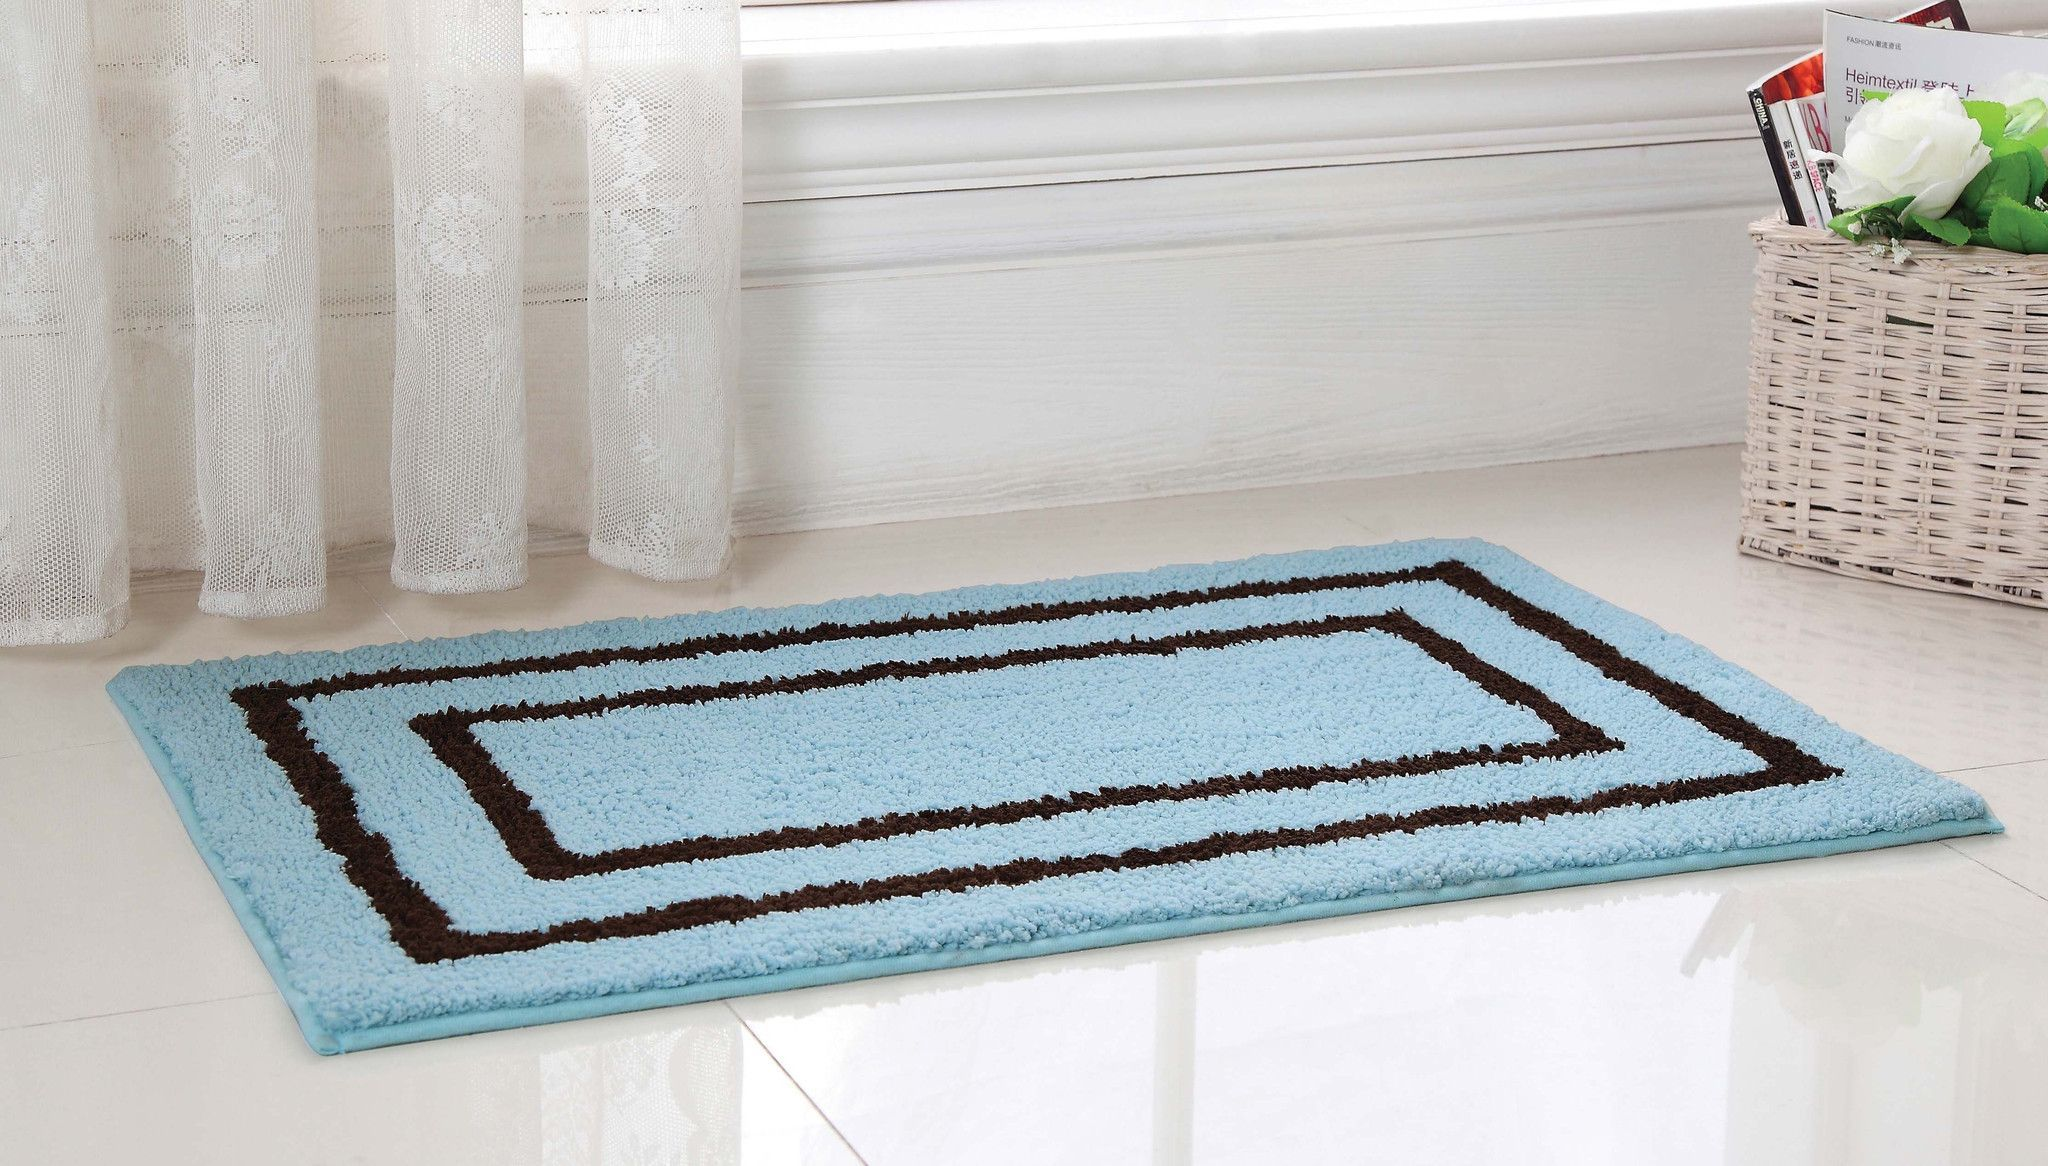 Regency Manor Microfiber Bath Rug X BLUE Brown Products - Blue and brown bath rugs for bathroom decorating ideas